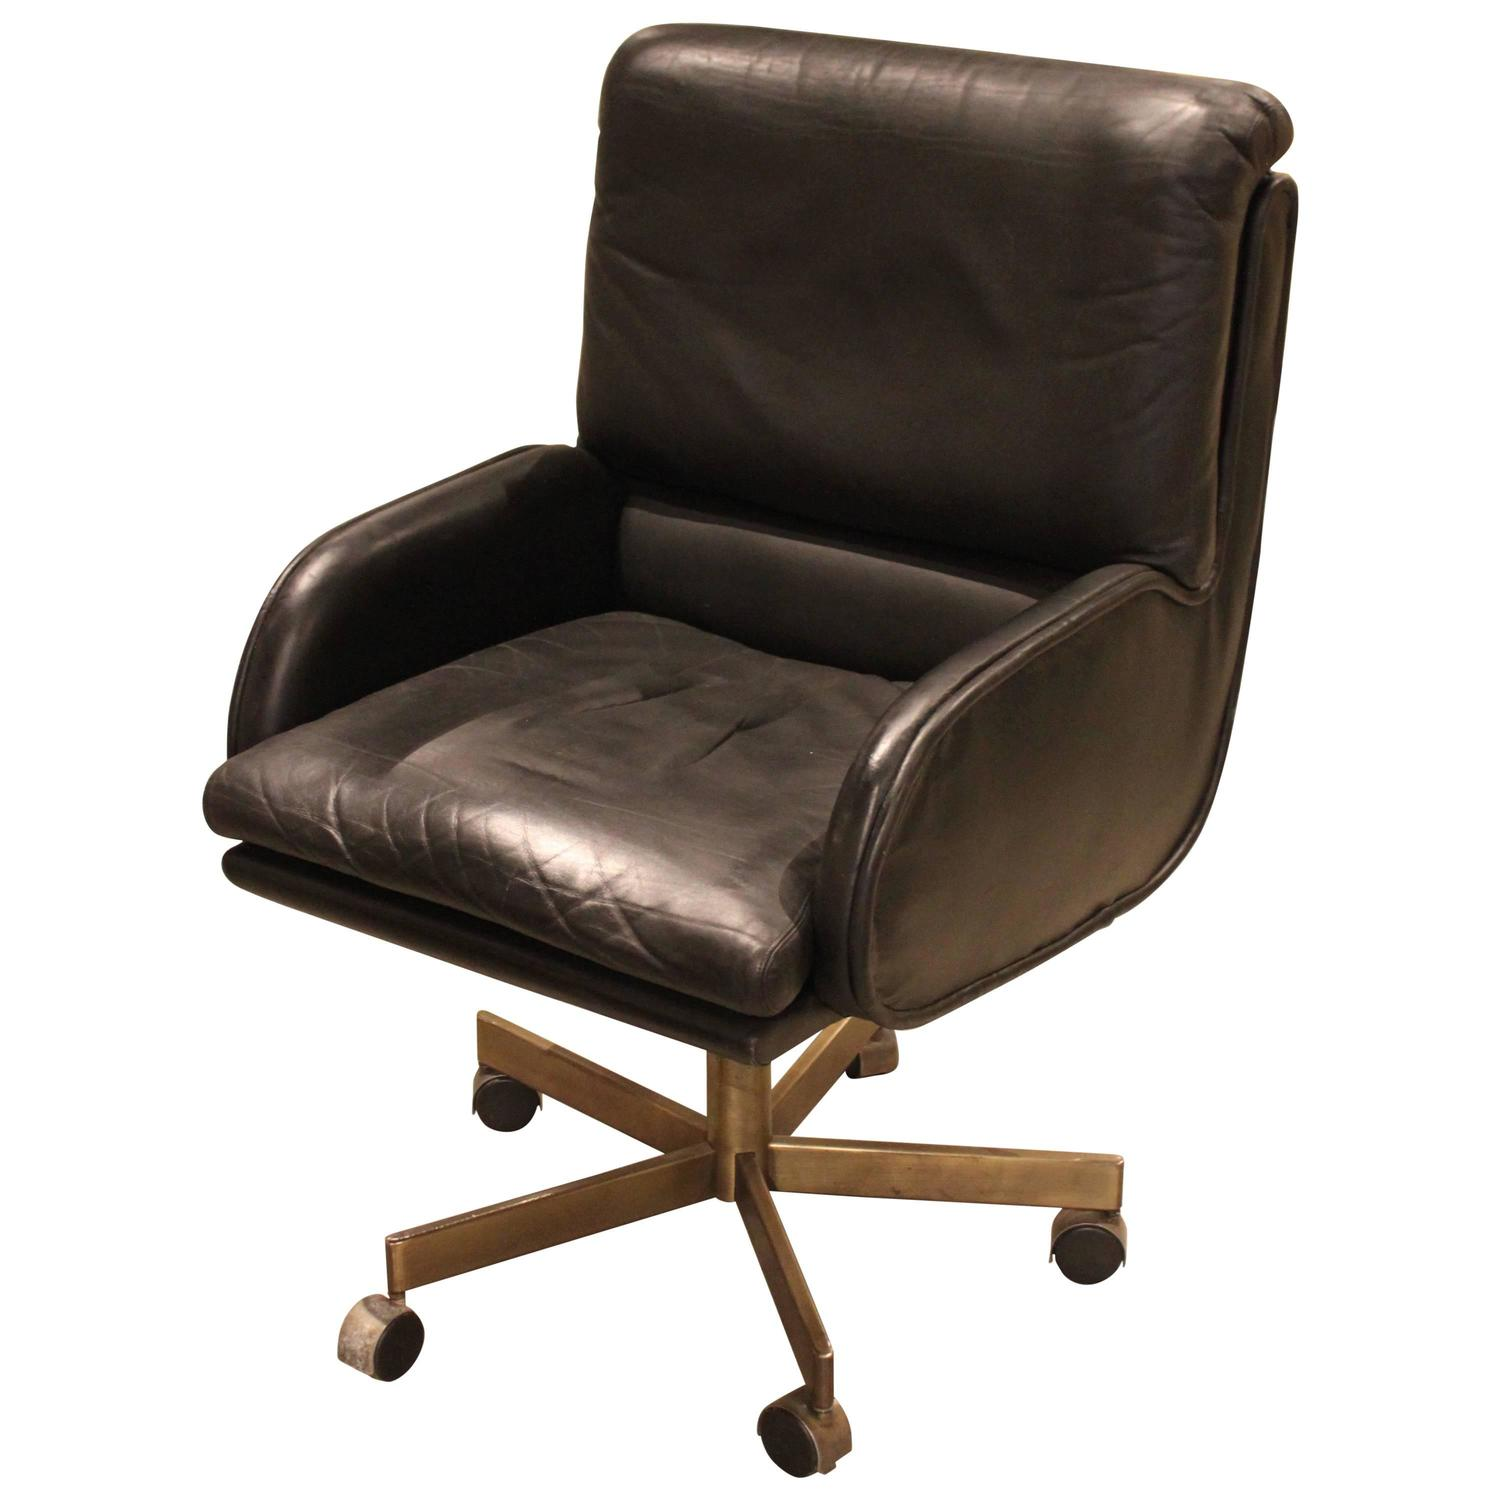 desk chairs ergonomic chair target beautiful vintage leather at 1stdibs